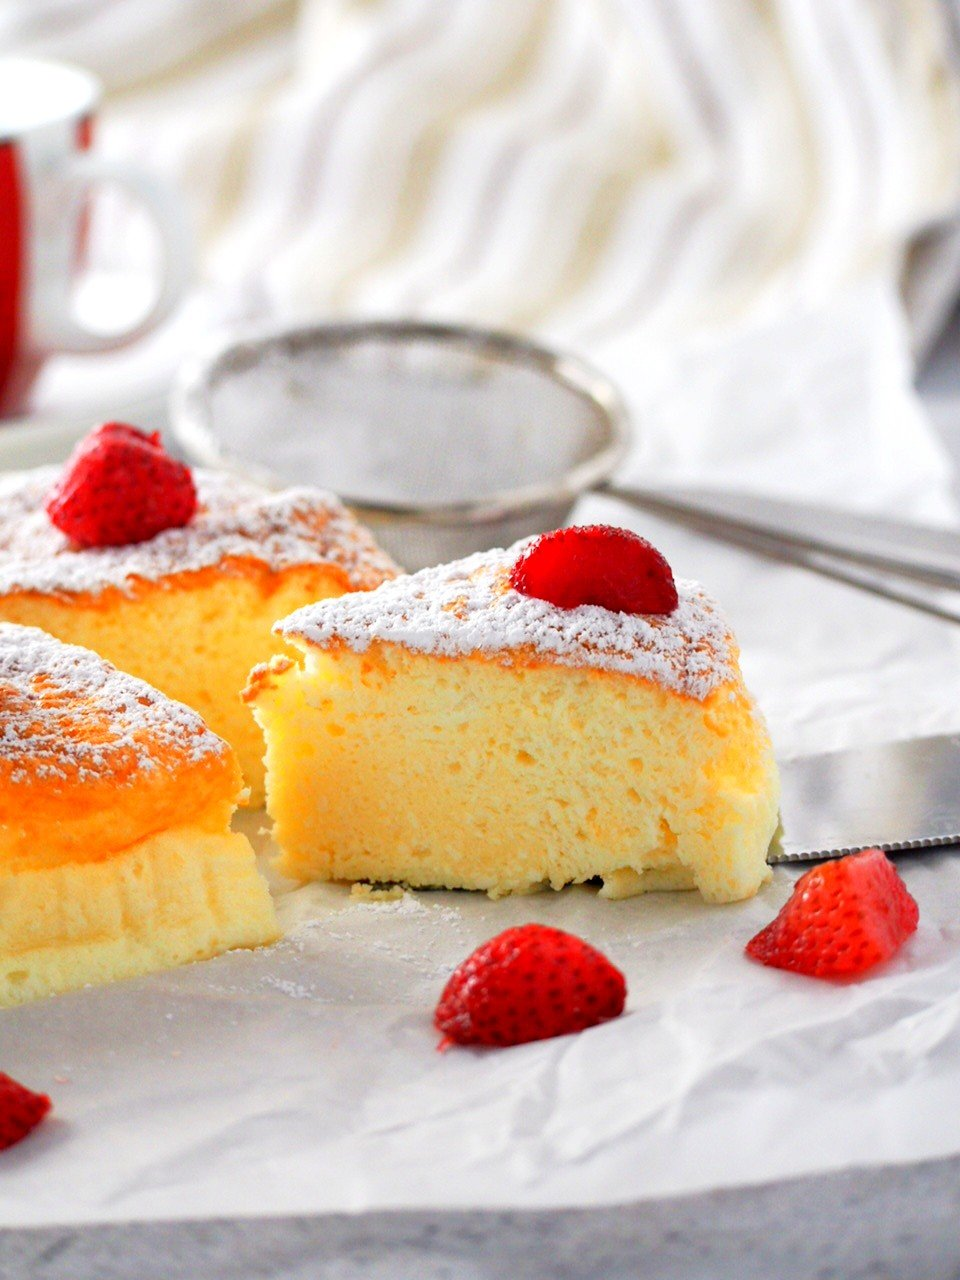 A slice of condensed milk cheesecake.